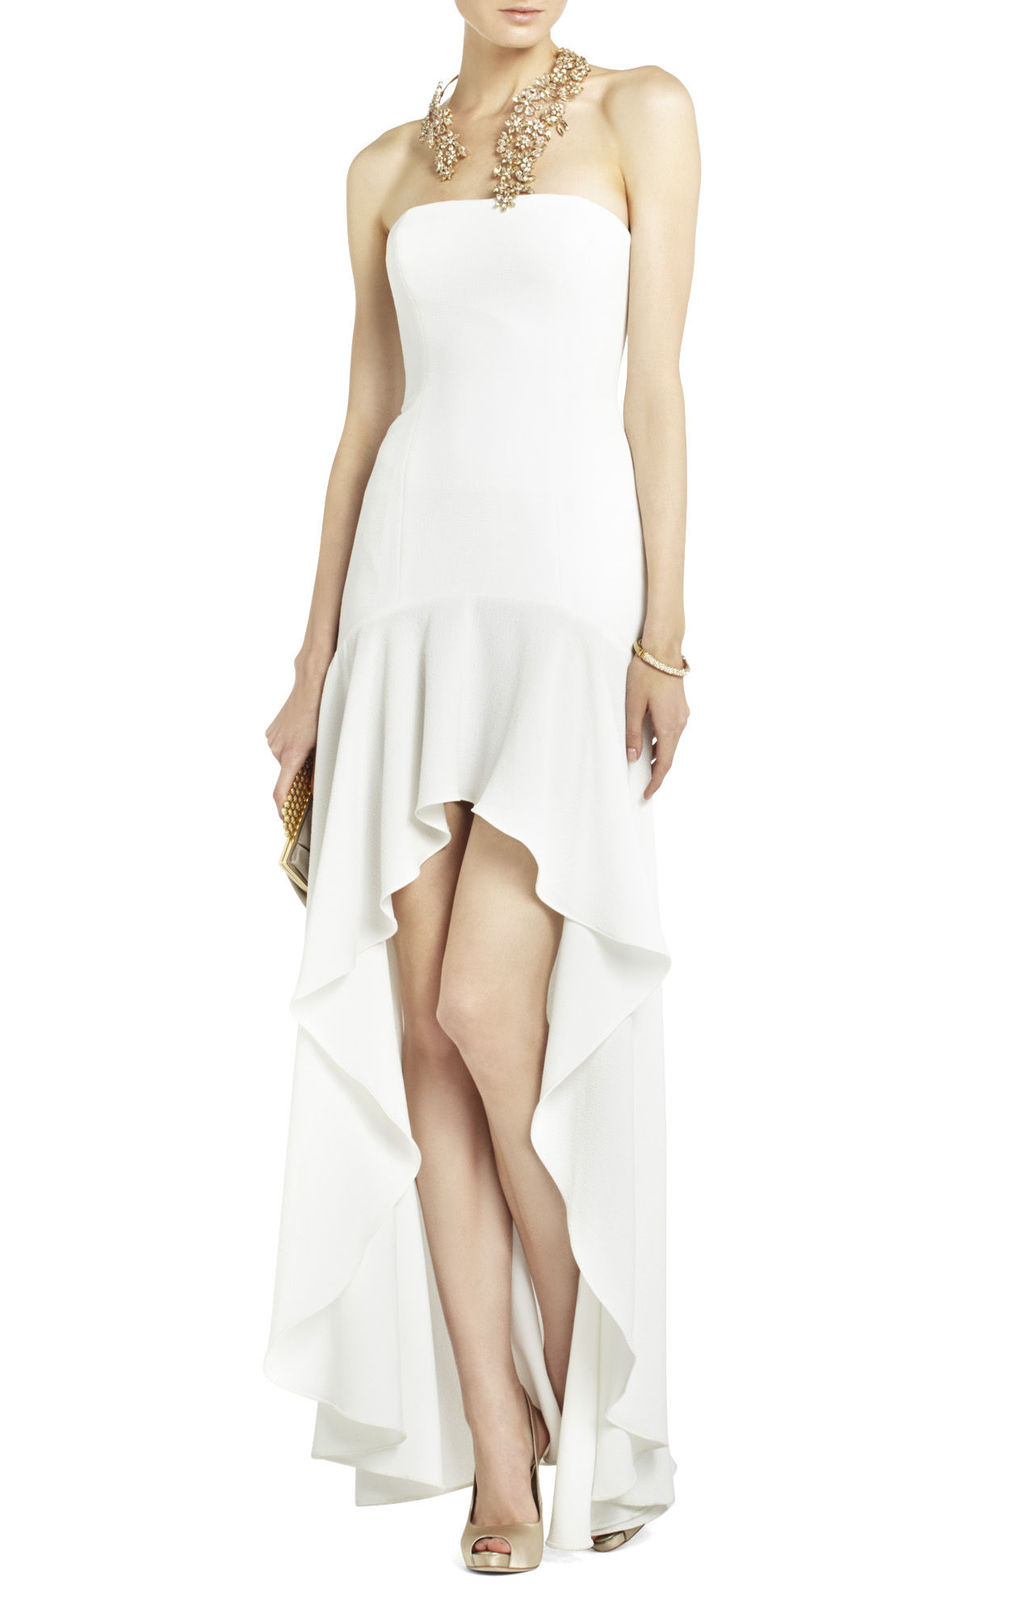 Bcbg-wedding-dress-max-azria-bridal-evangelina.full